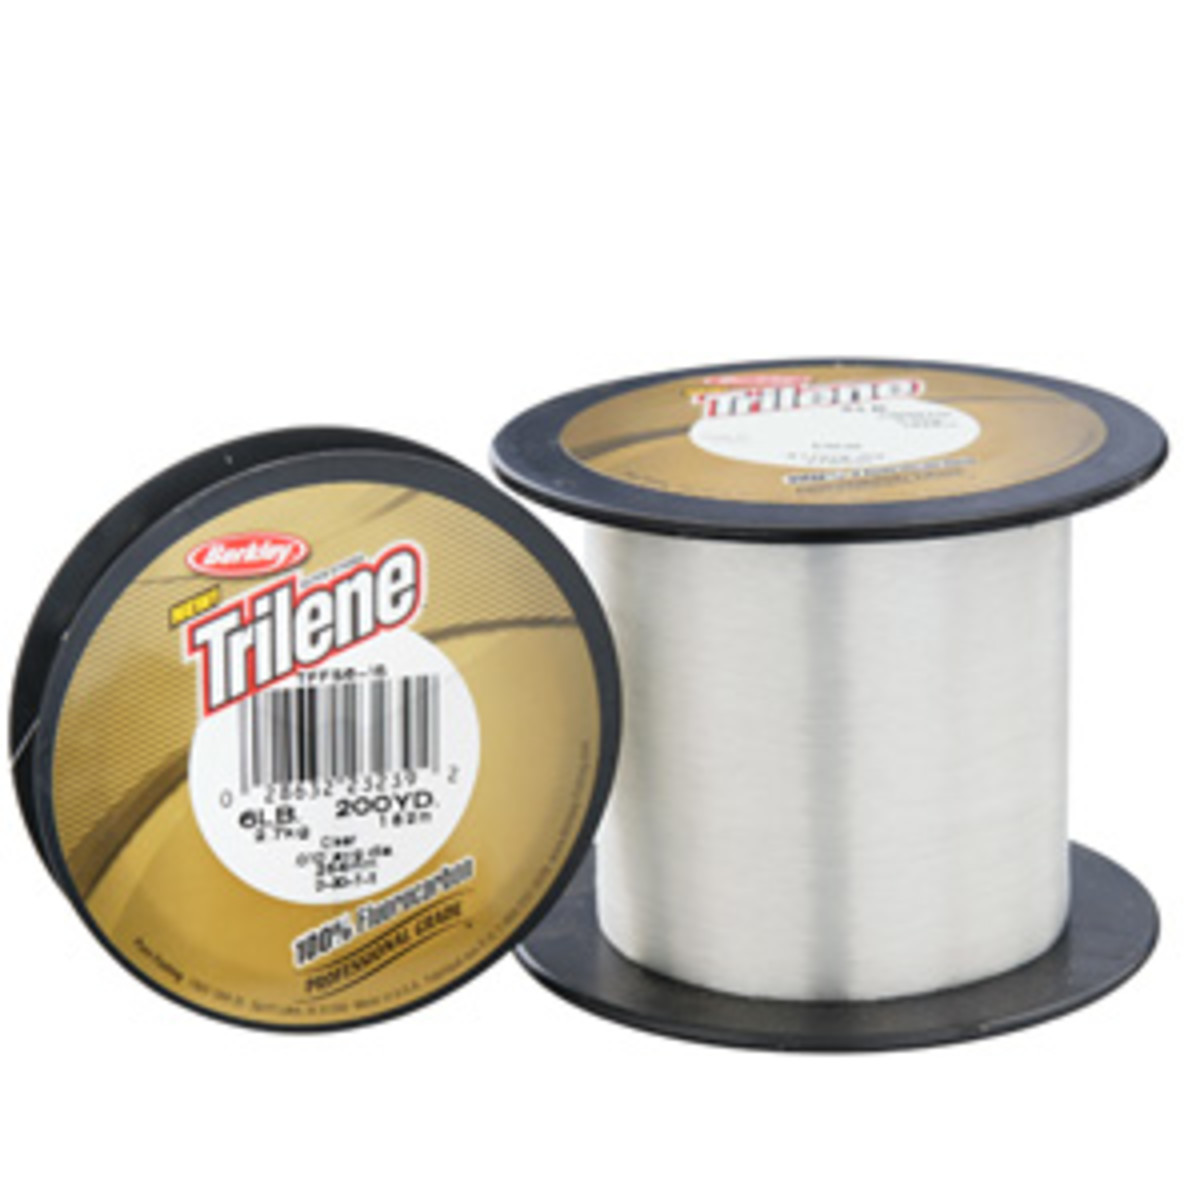 Choosing the right type of fishing line skyaboveus for Best fluorocarbon fishing line